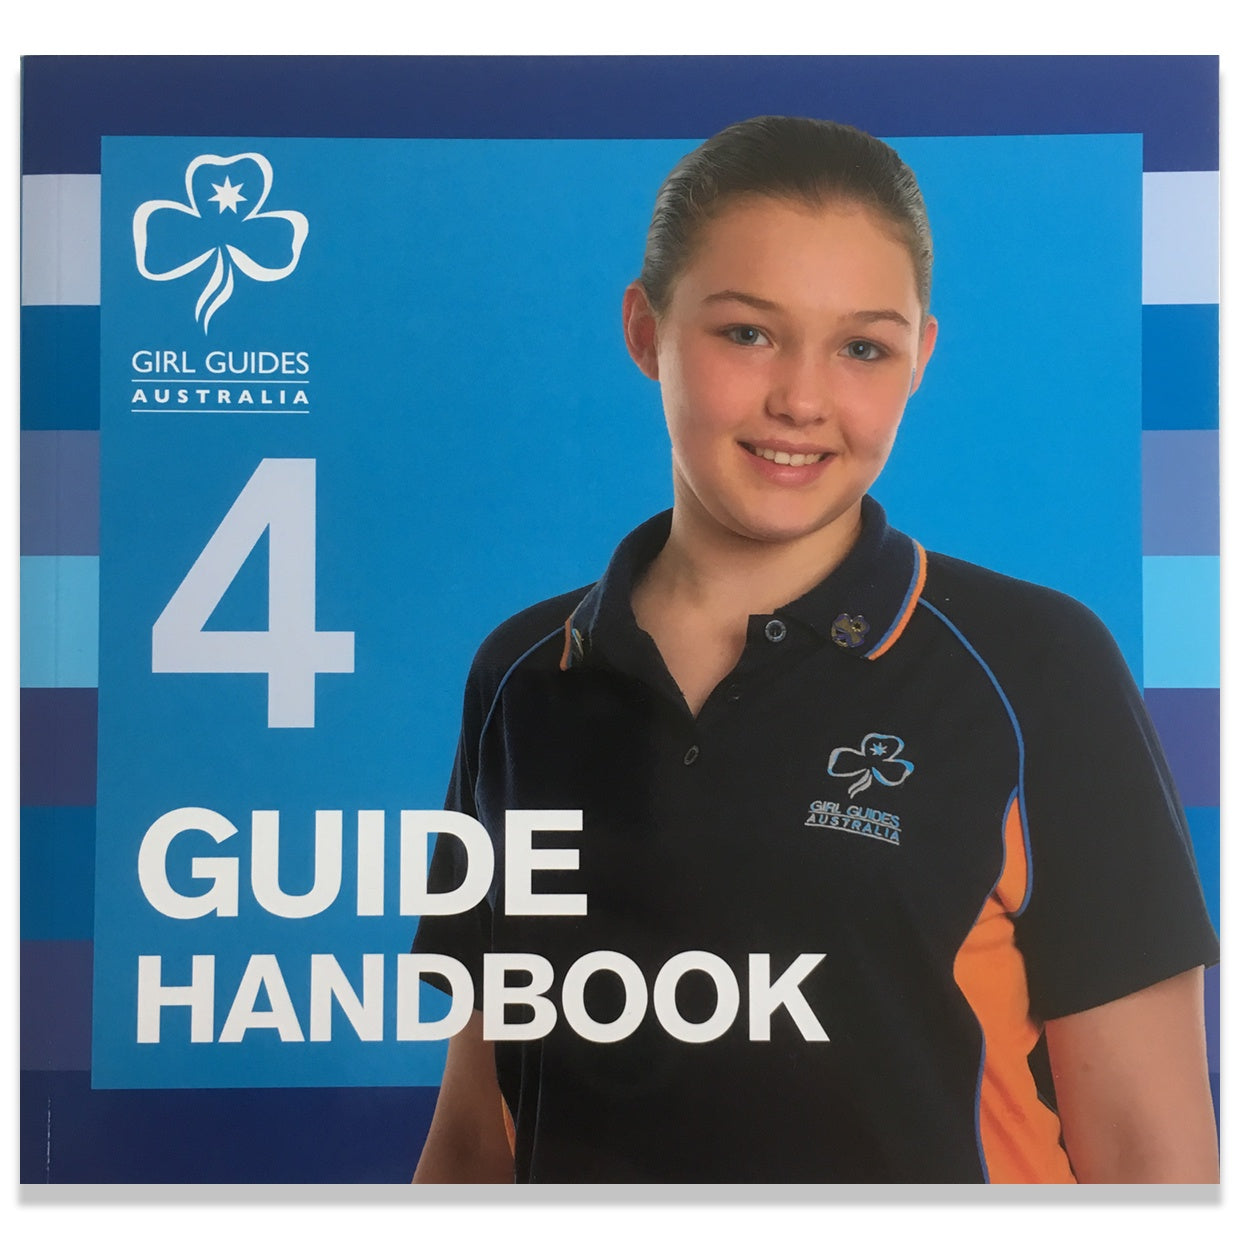 guide book with young girl